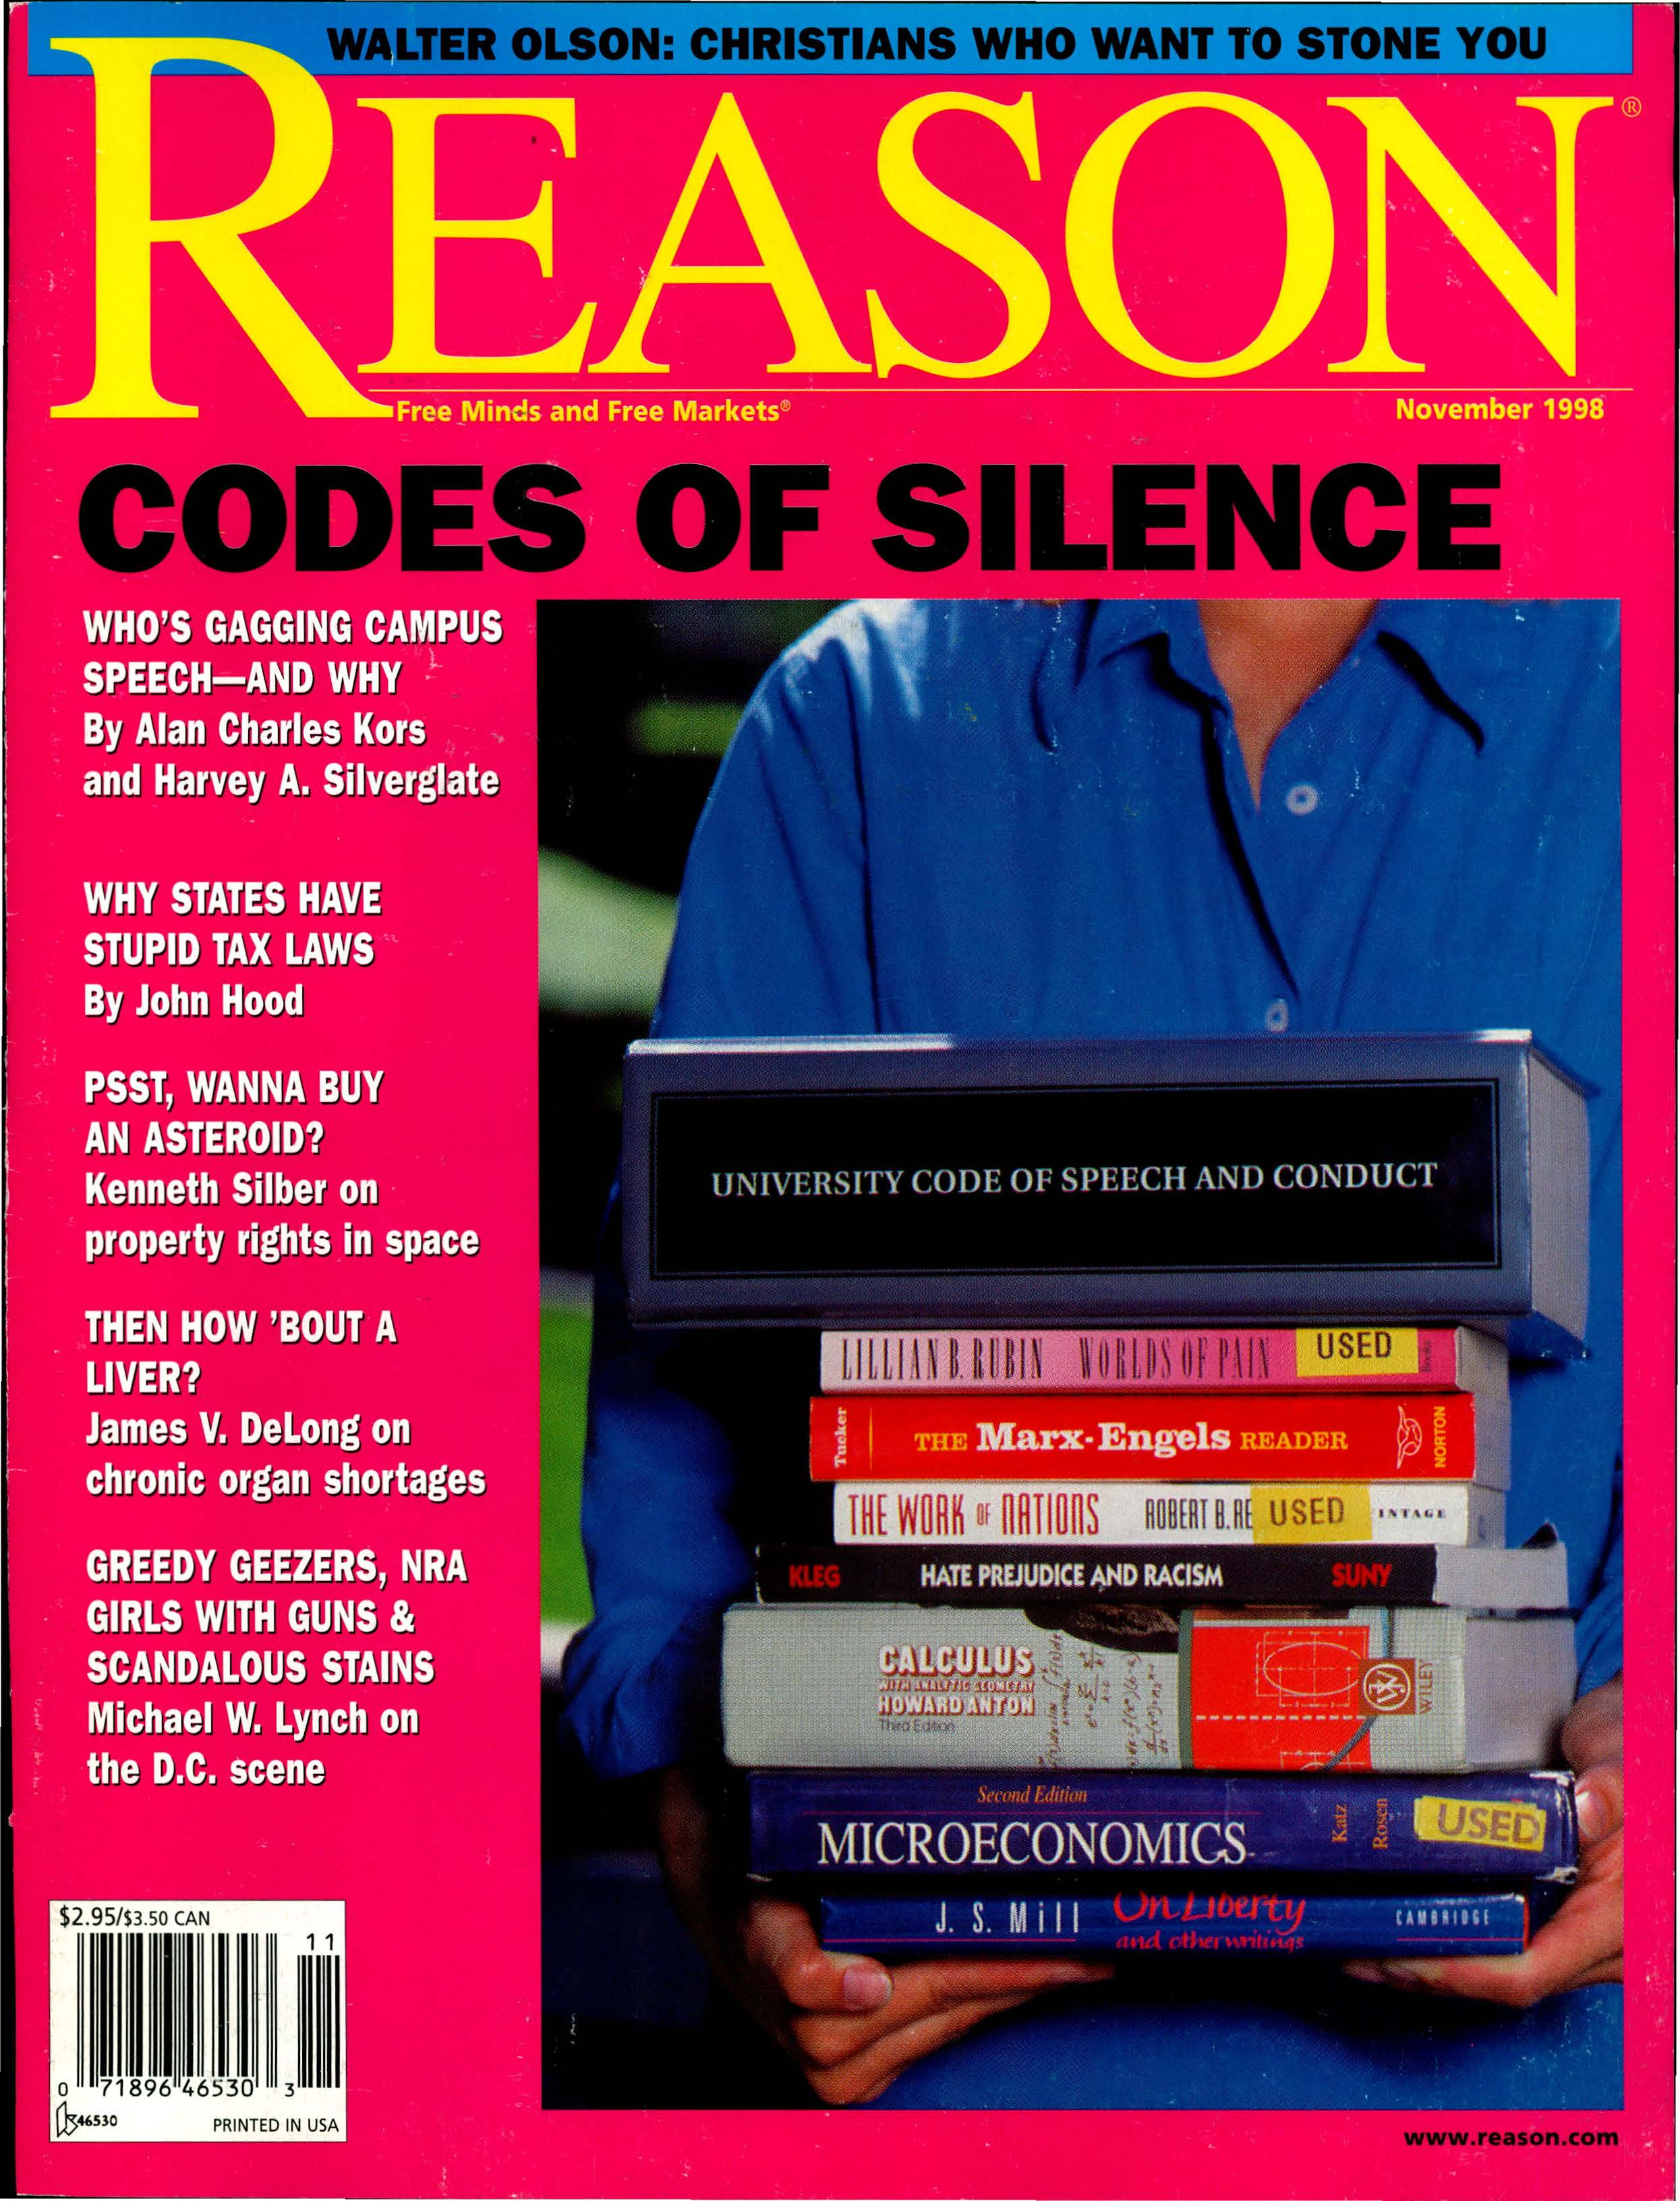 Reason Magazine, November 1998 cover image